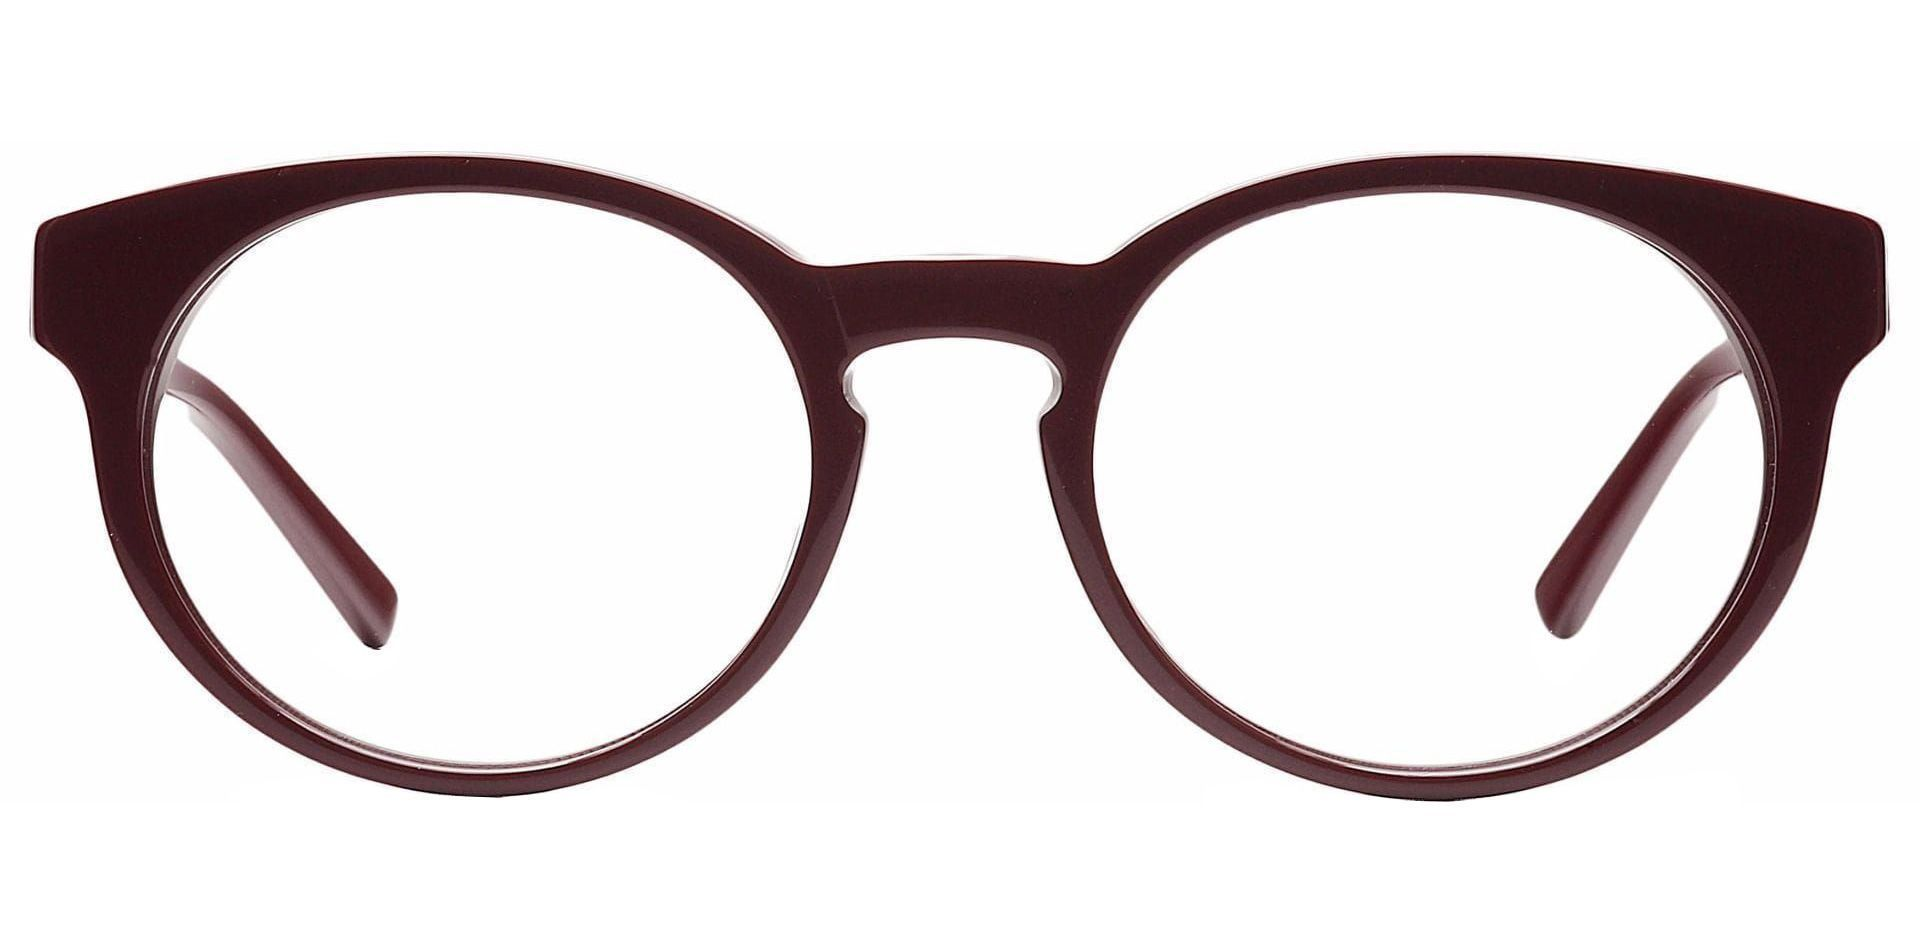 Hip Round Prescription Glasses - Wine